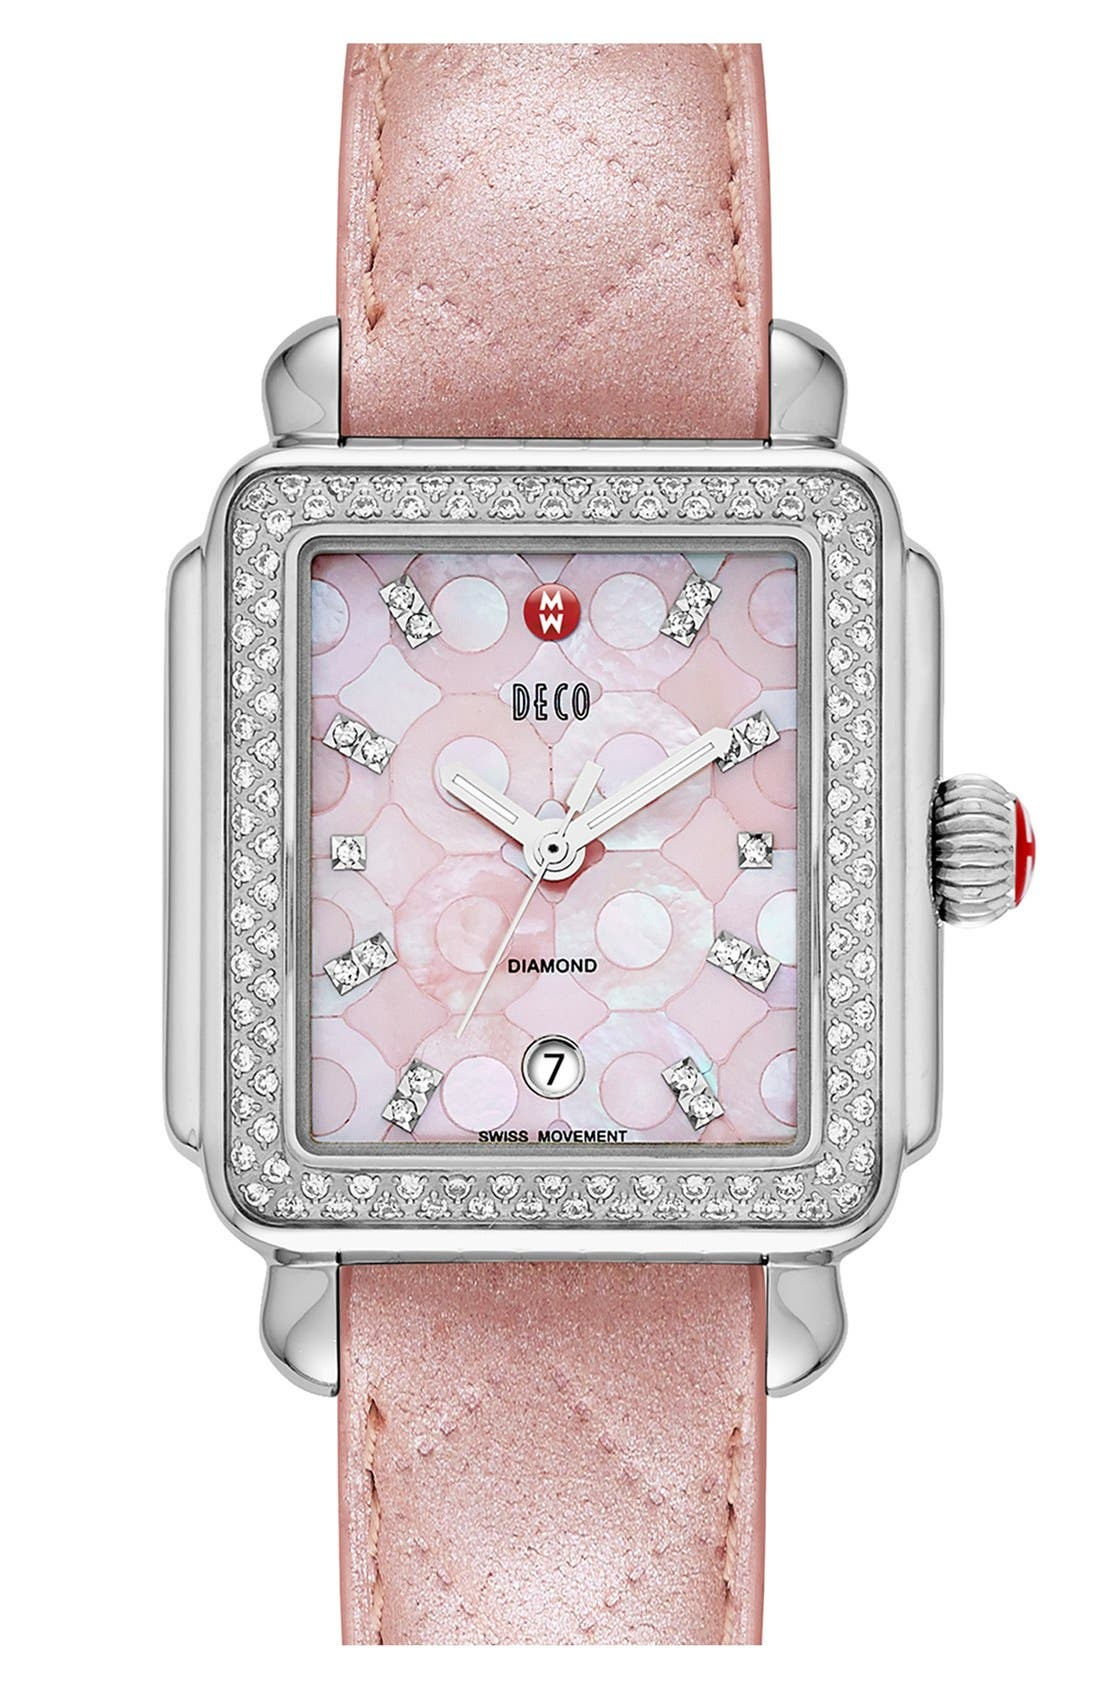 Alternate Image 3  - MICHELE 'Deco Diamond' Pink Mosaic Dial Watch Case, 33mm x 35mm